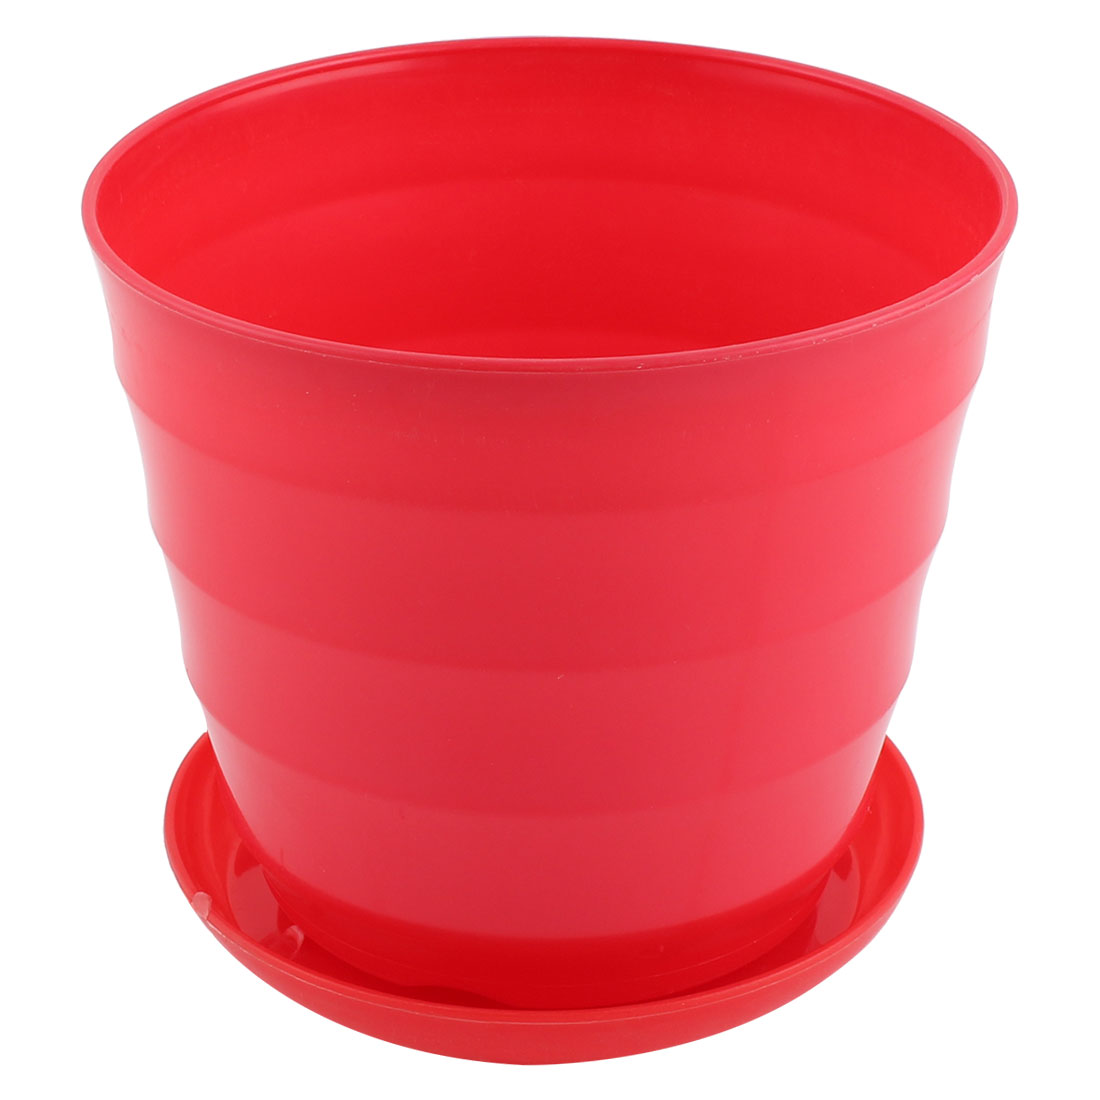 Home Patio Office Plastic Stripe Pattern Plant Planter Container Flower Pot Red